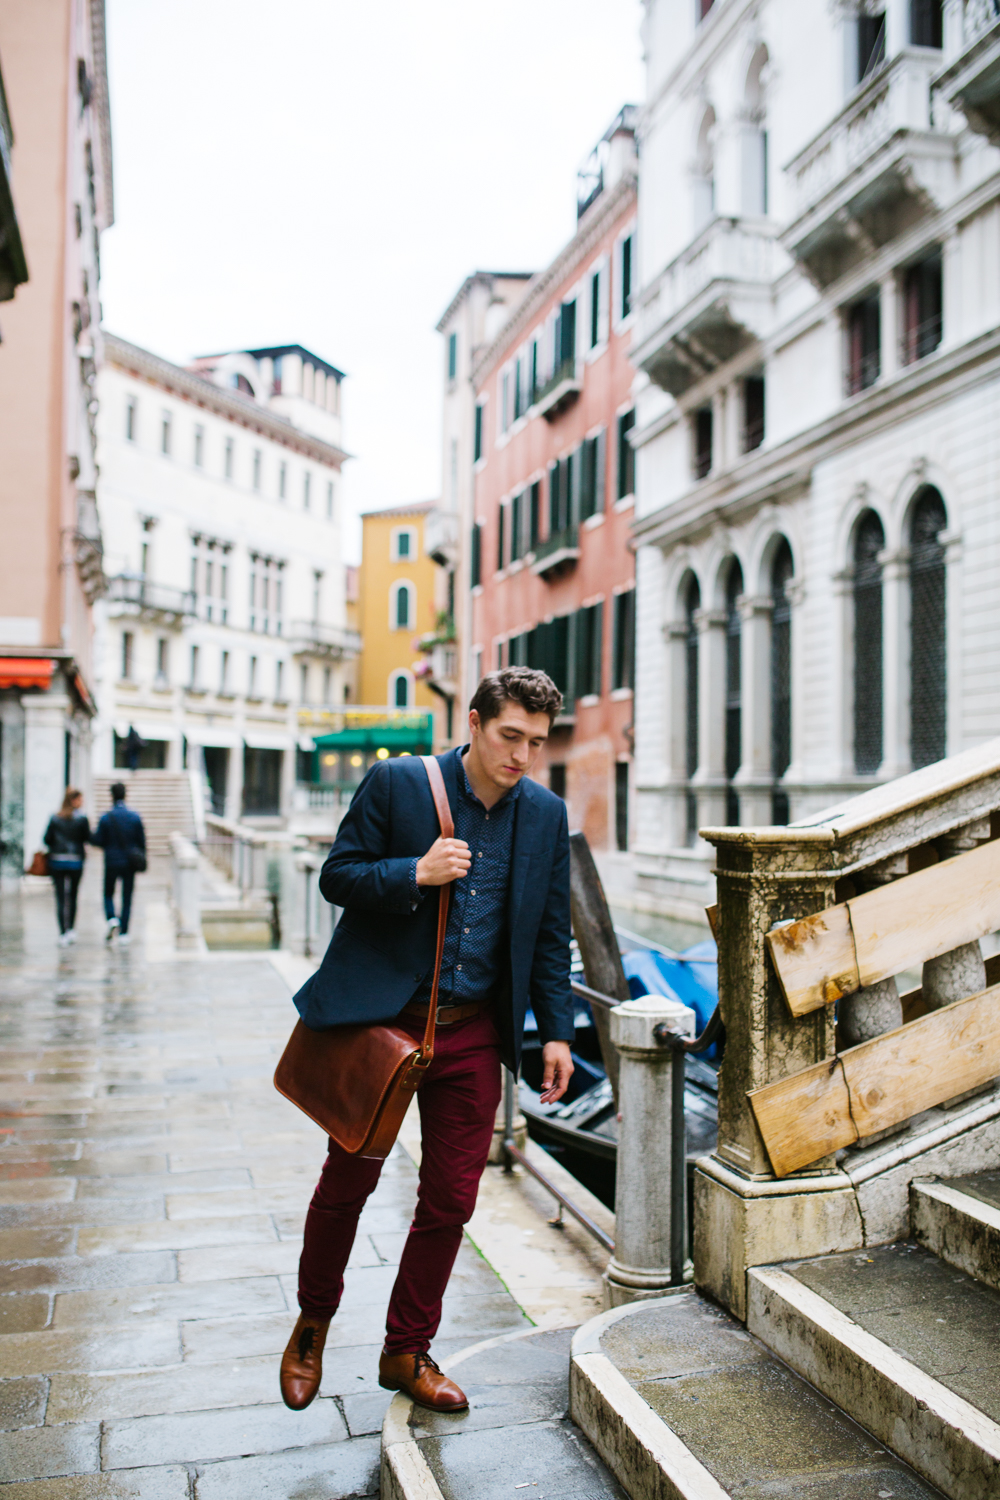 Wedding Photographer and Videographer Tyler Ranalla in Venice